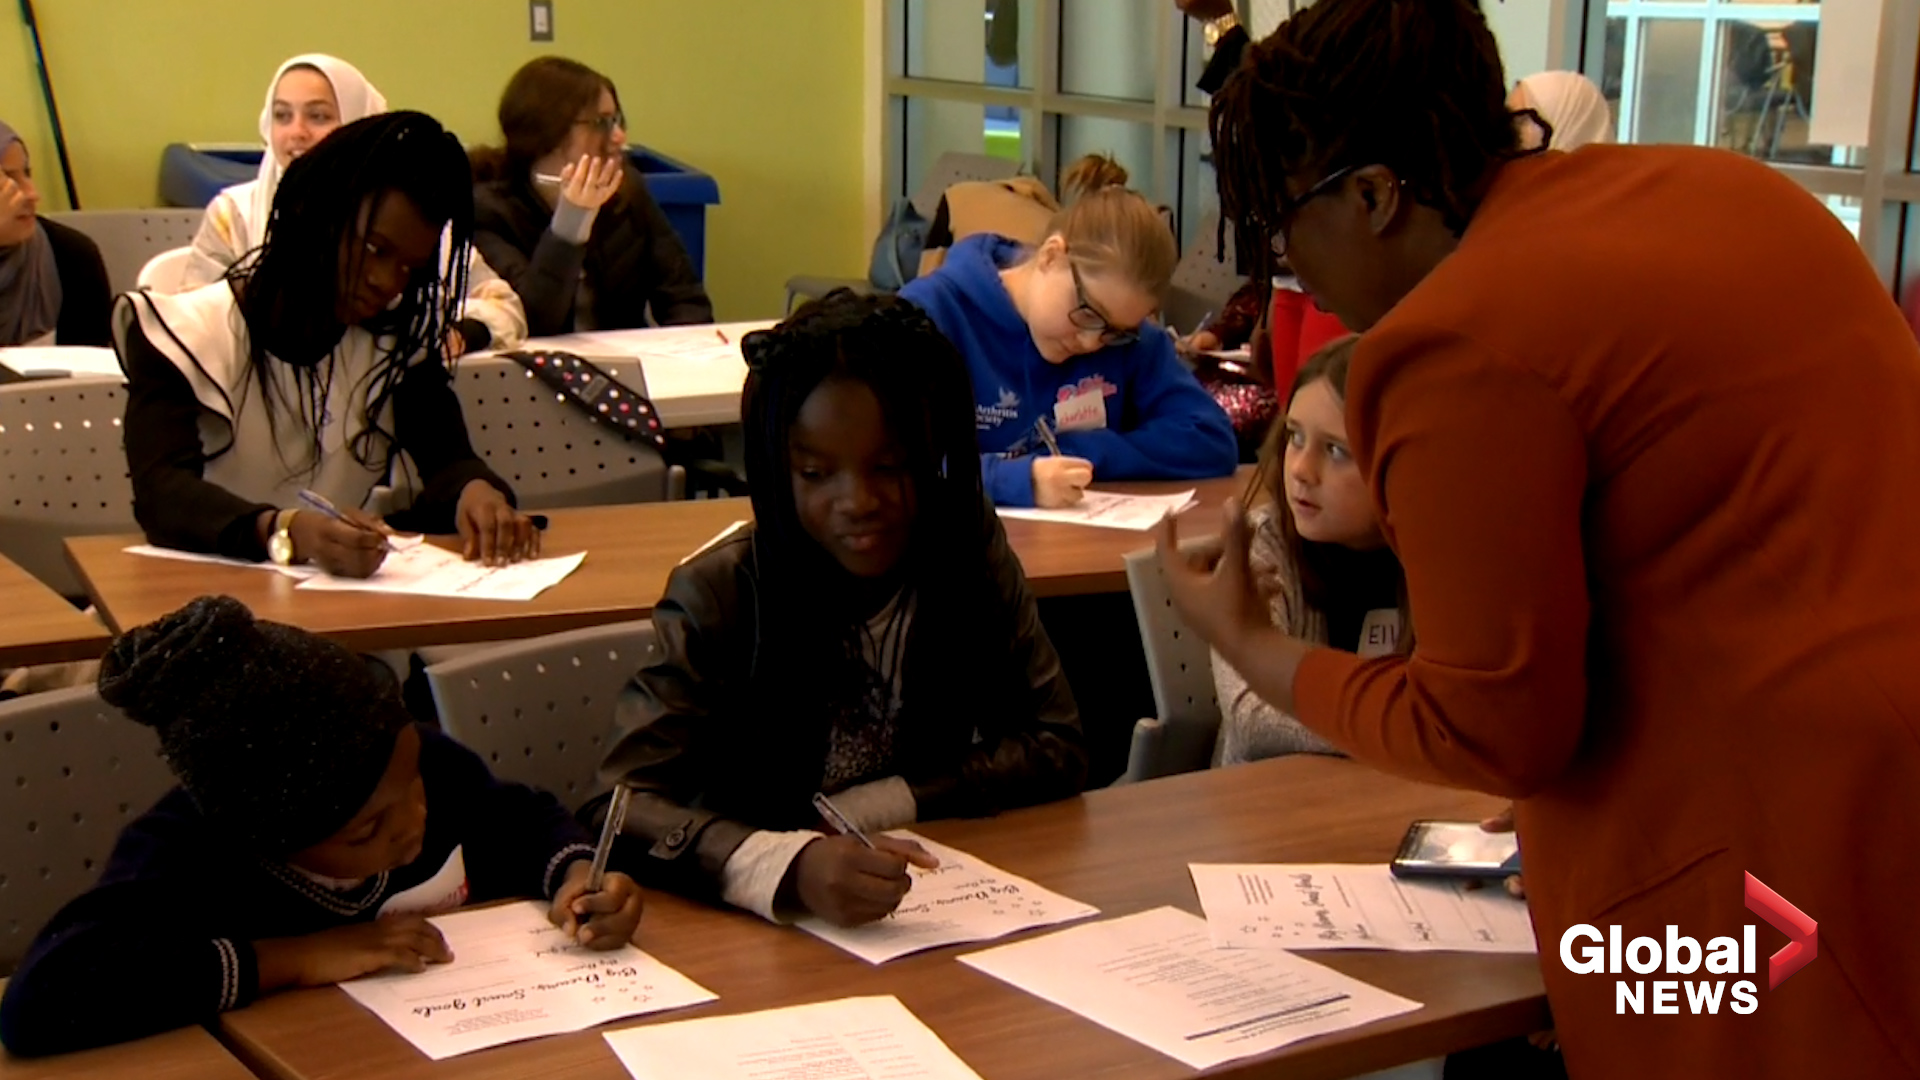 Halifax women share their stories, goals for gender equality at the Girls Inspire Girls Summit